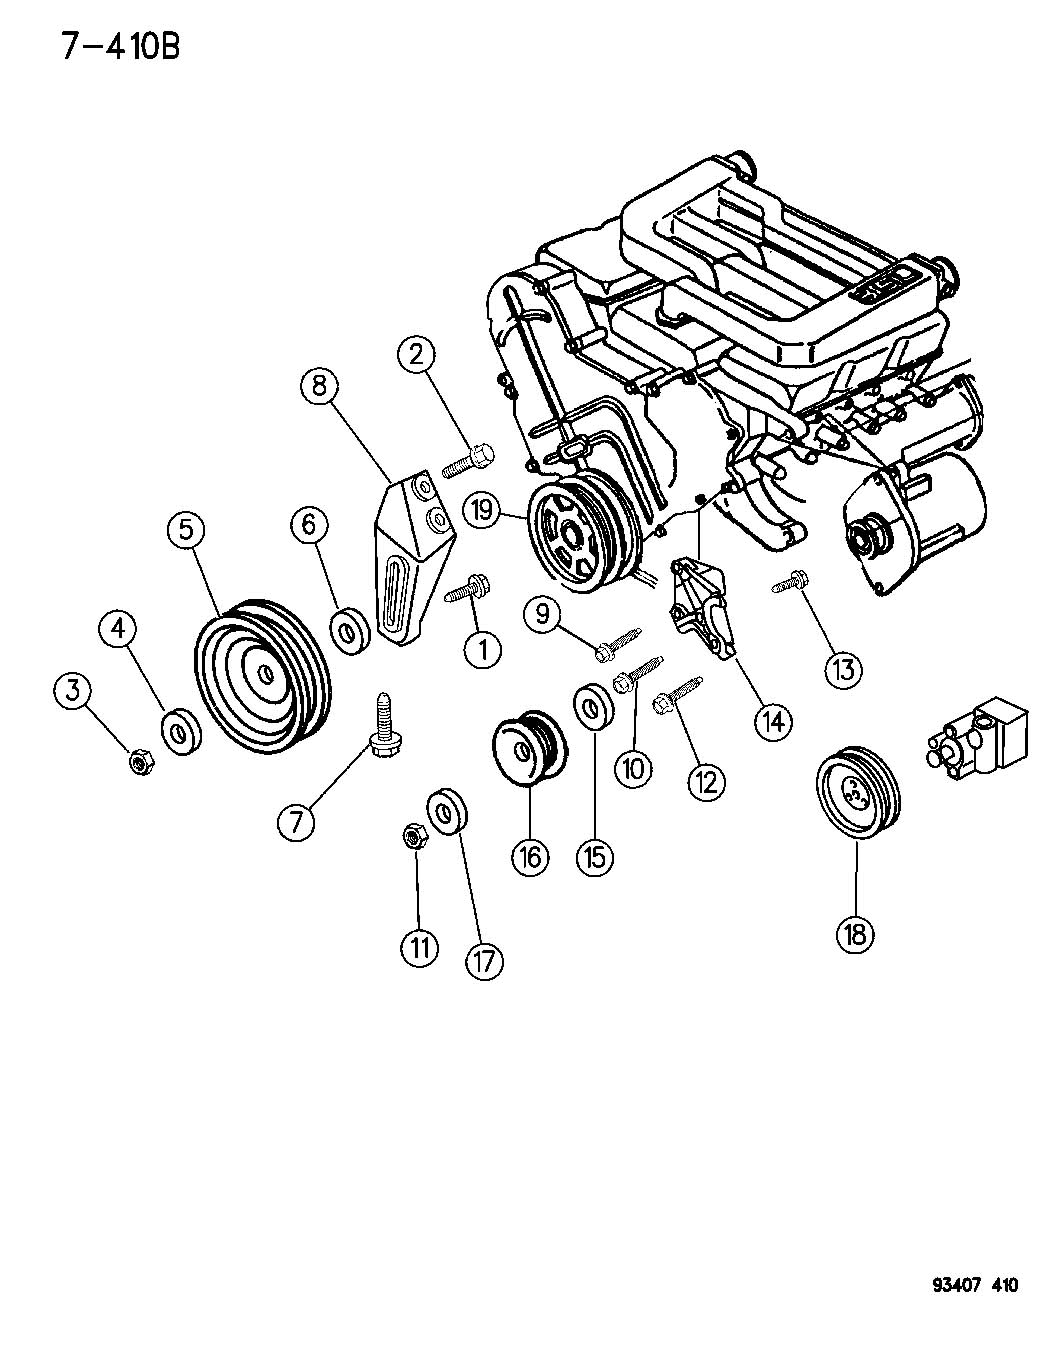 Diagram DRIVE PULLEYS 3.5L ENGINE LH BODY for your Dodge